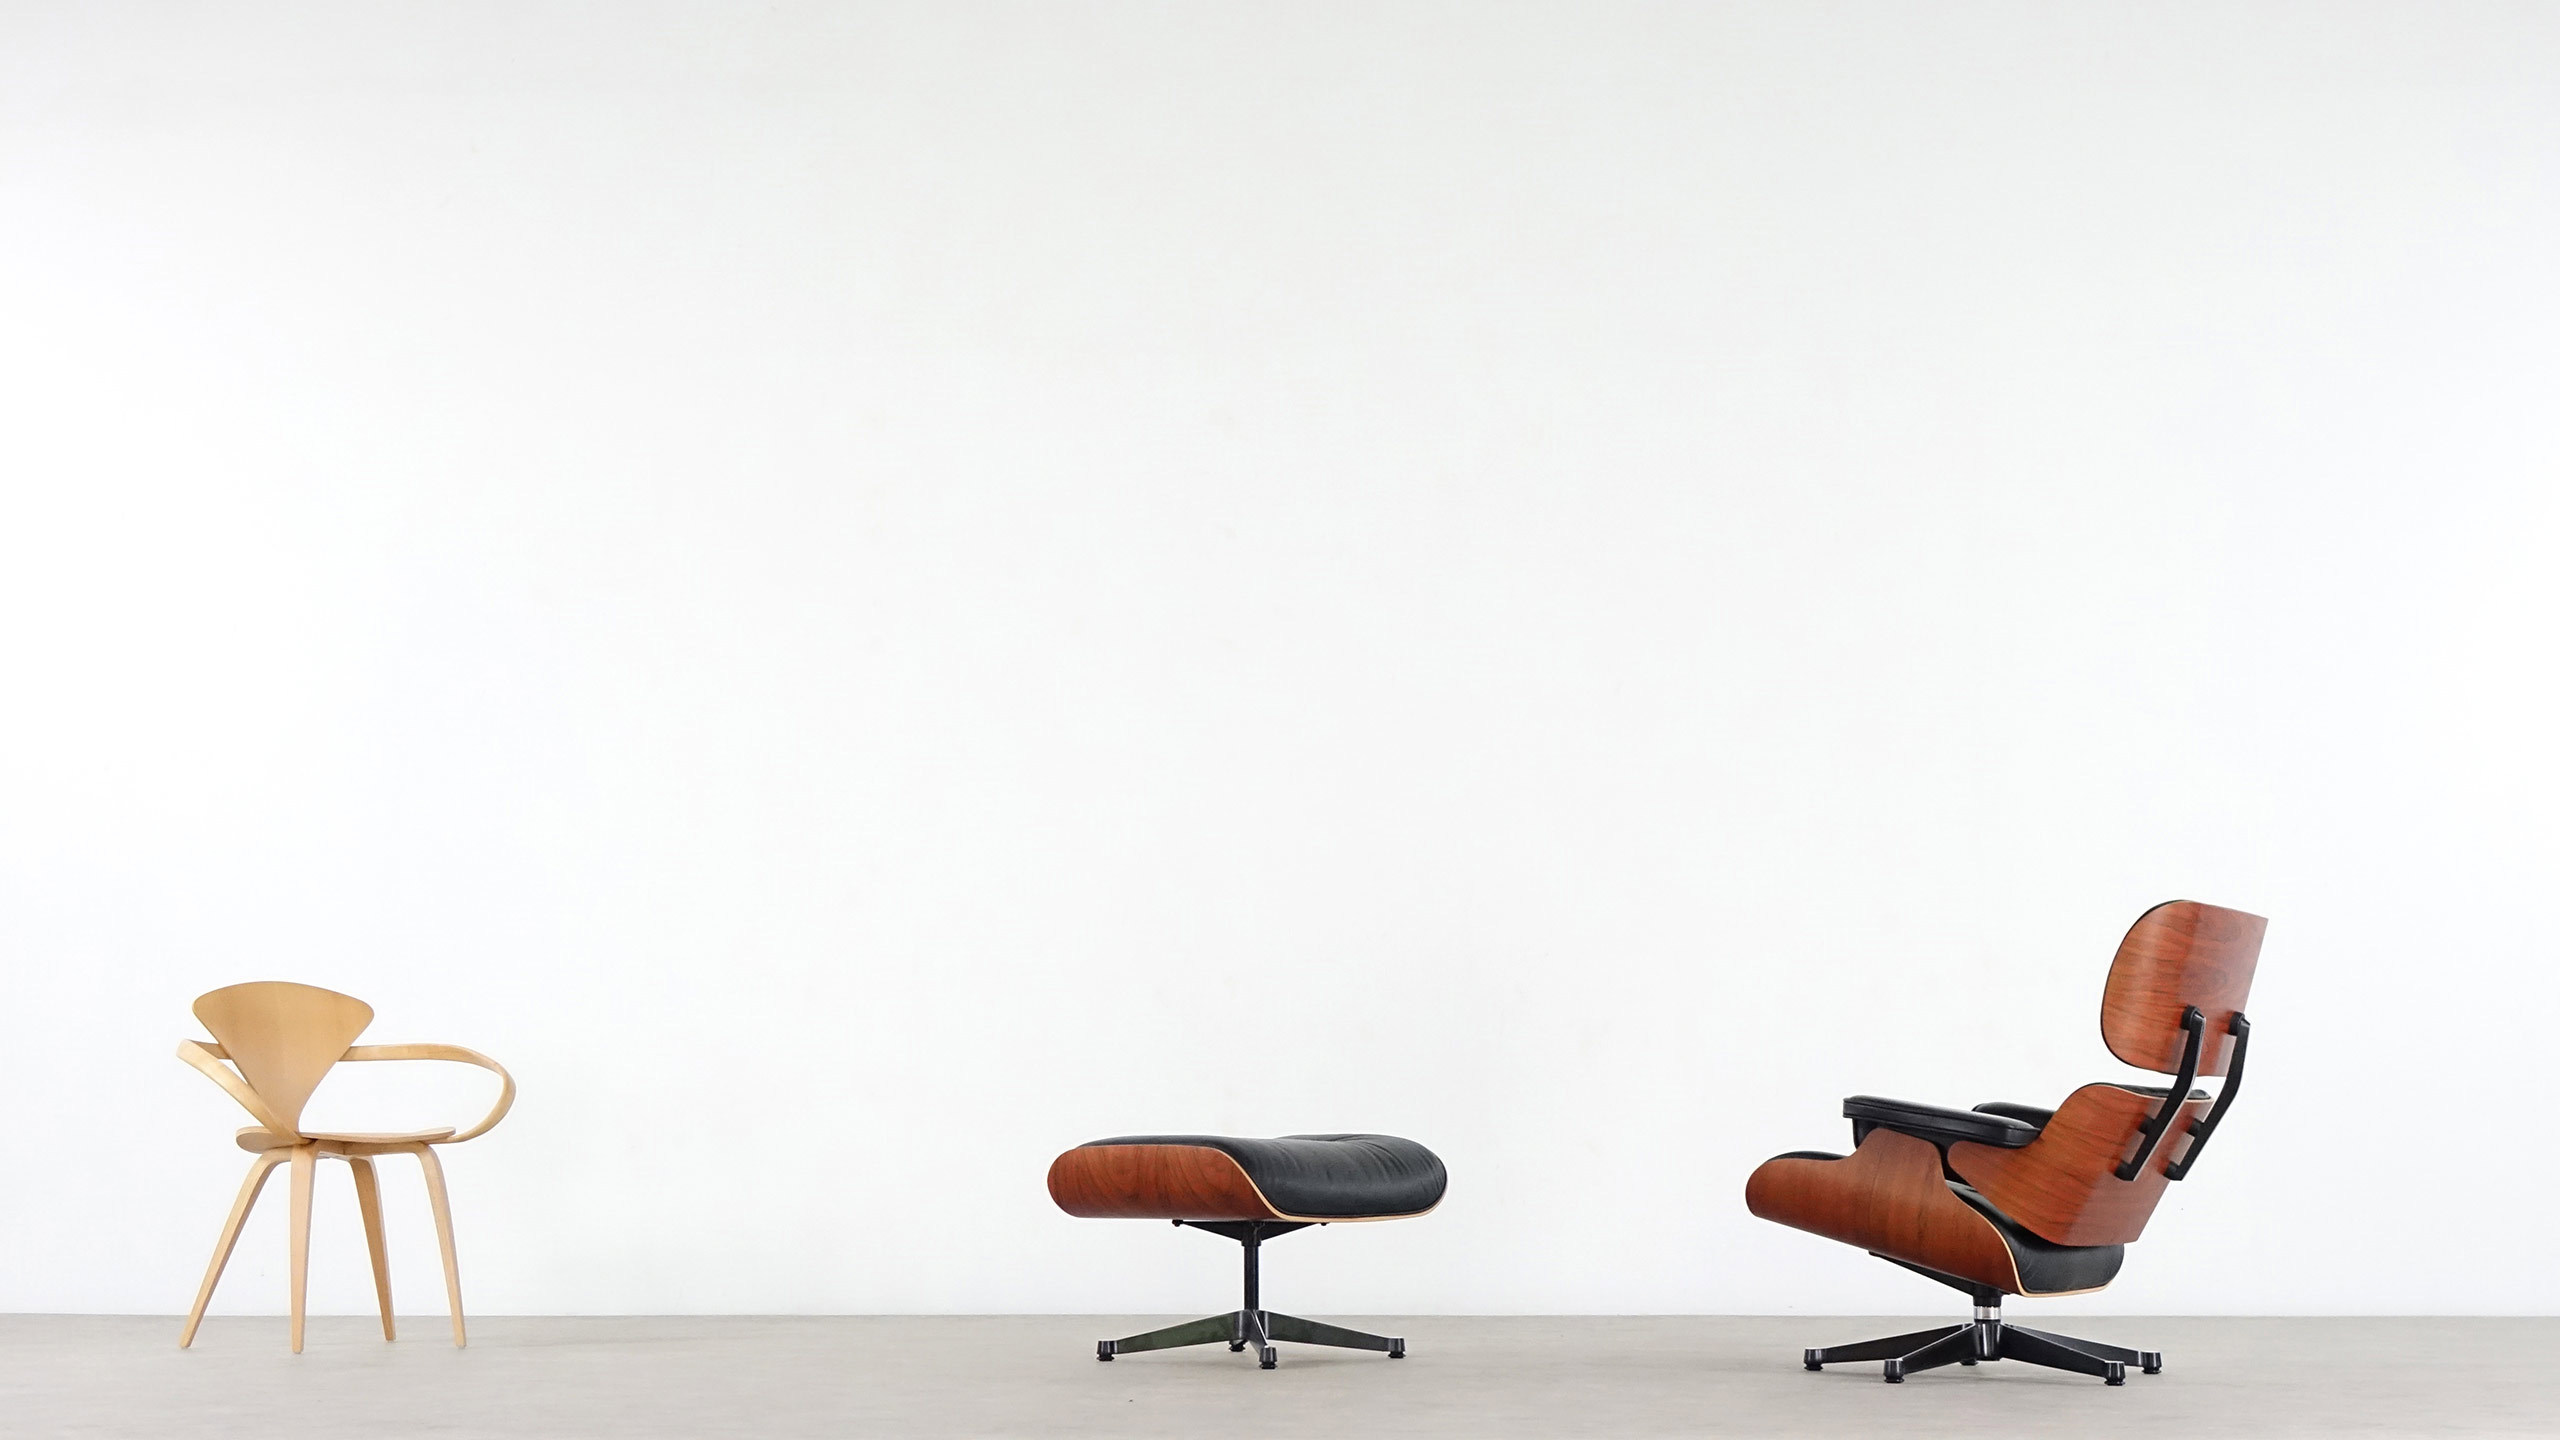 Charles eames lounge chair by vitra for Eames lounge sessel nachbau